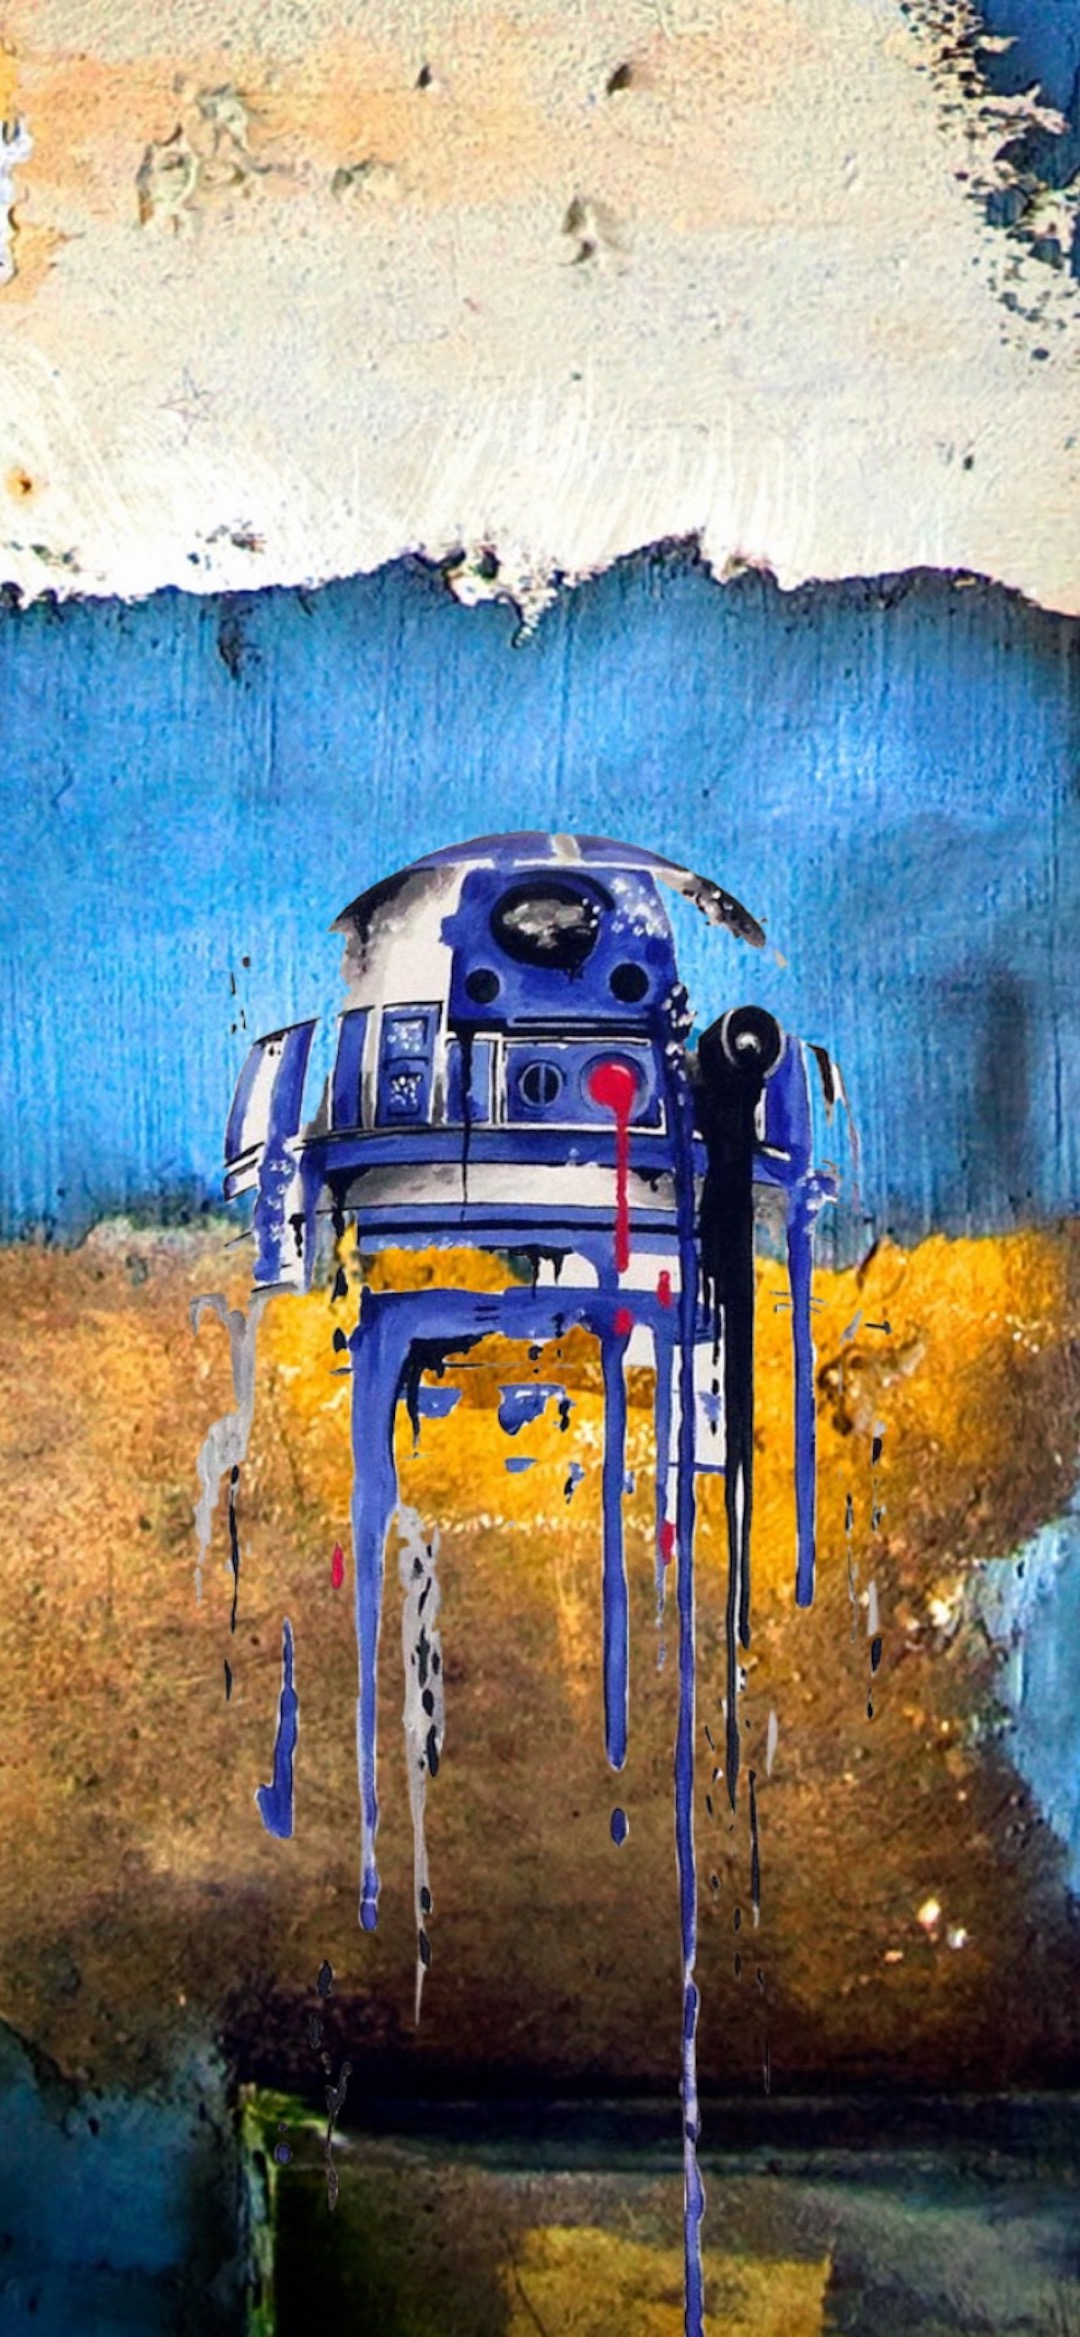 r2d2 b star wars iphone X wallpaper by iamjoeya